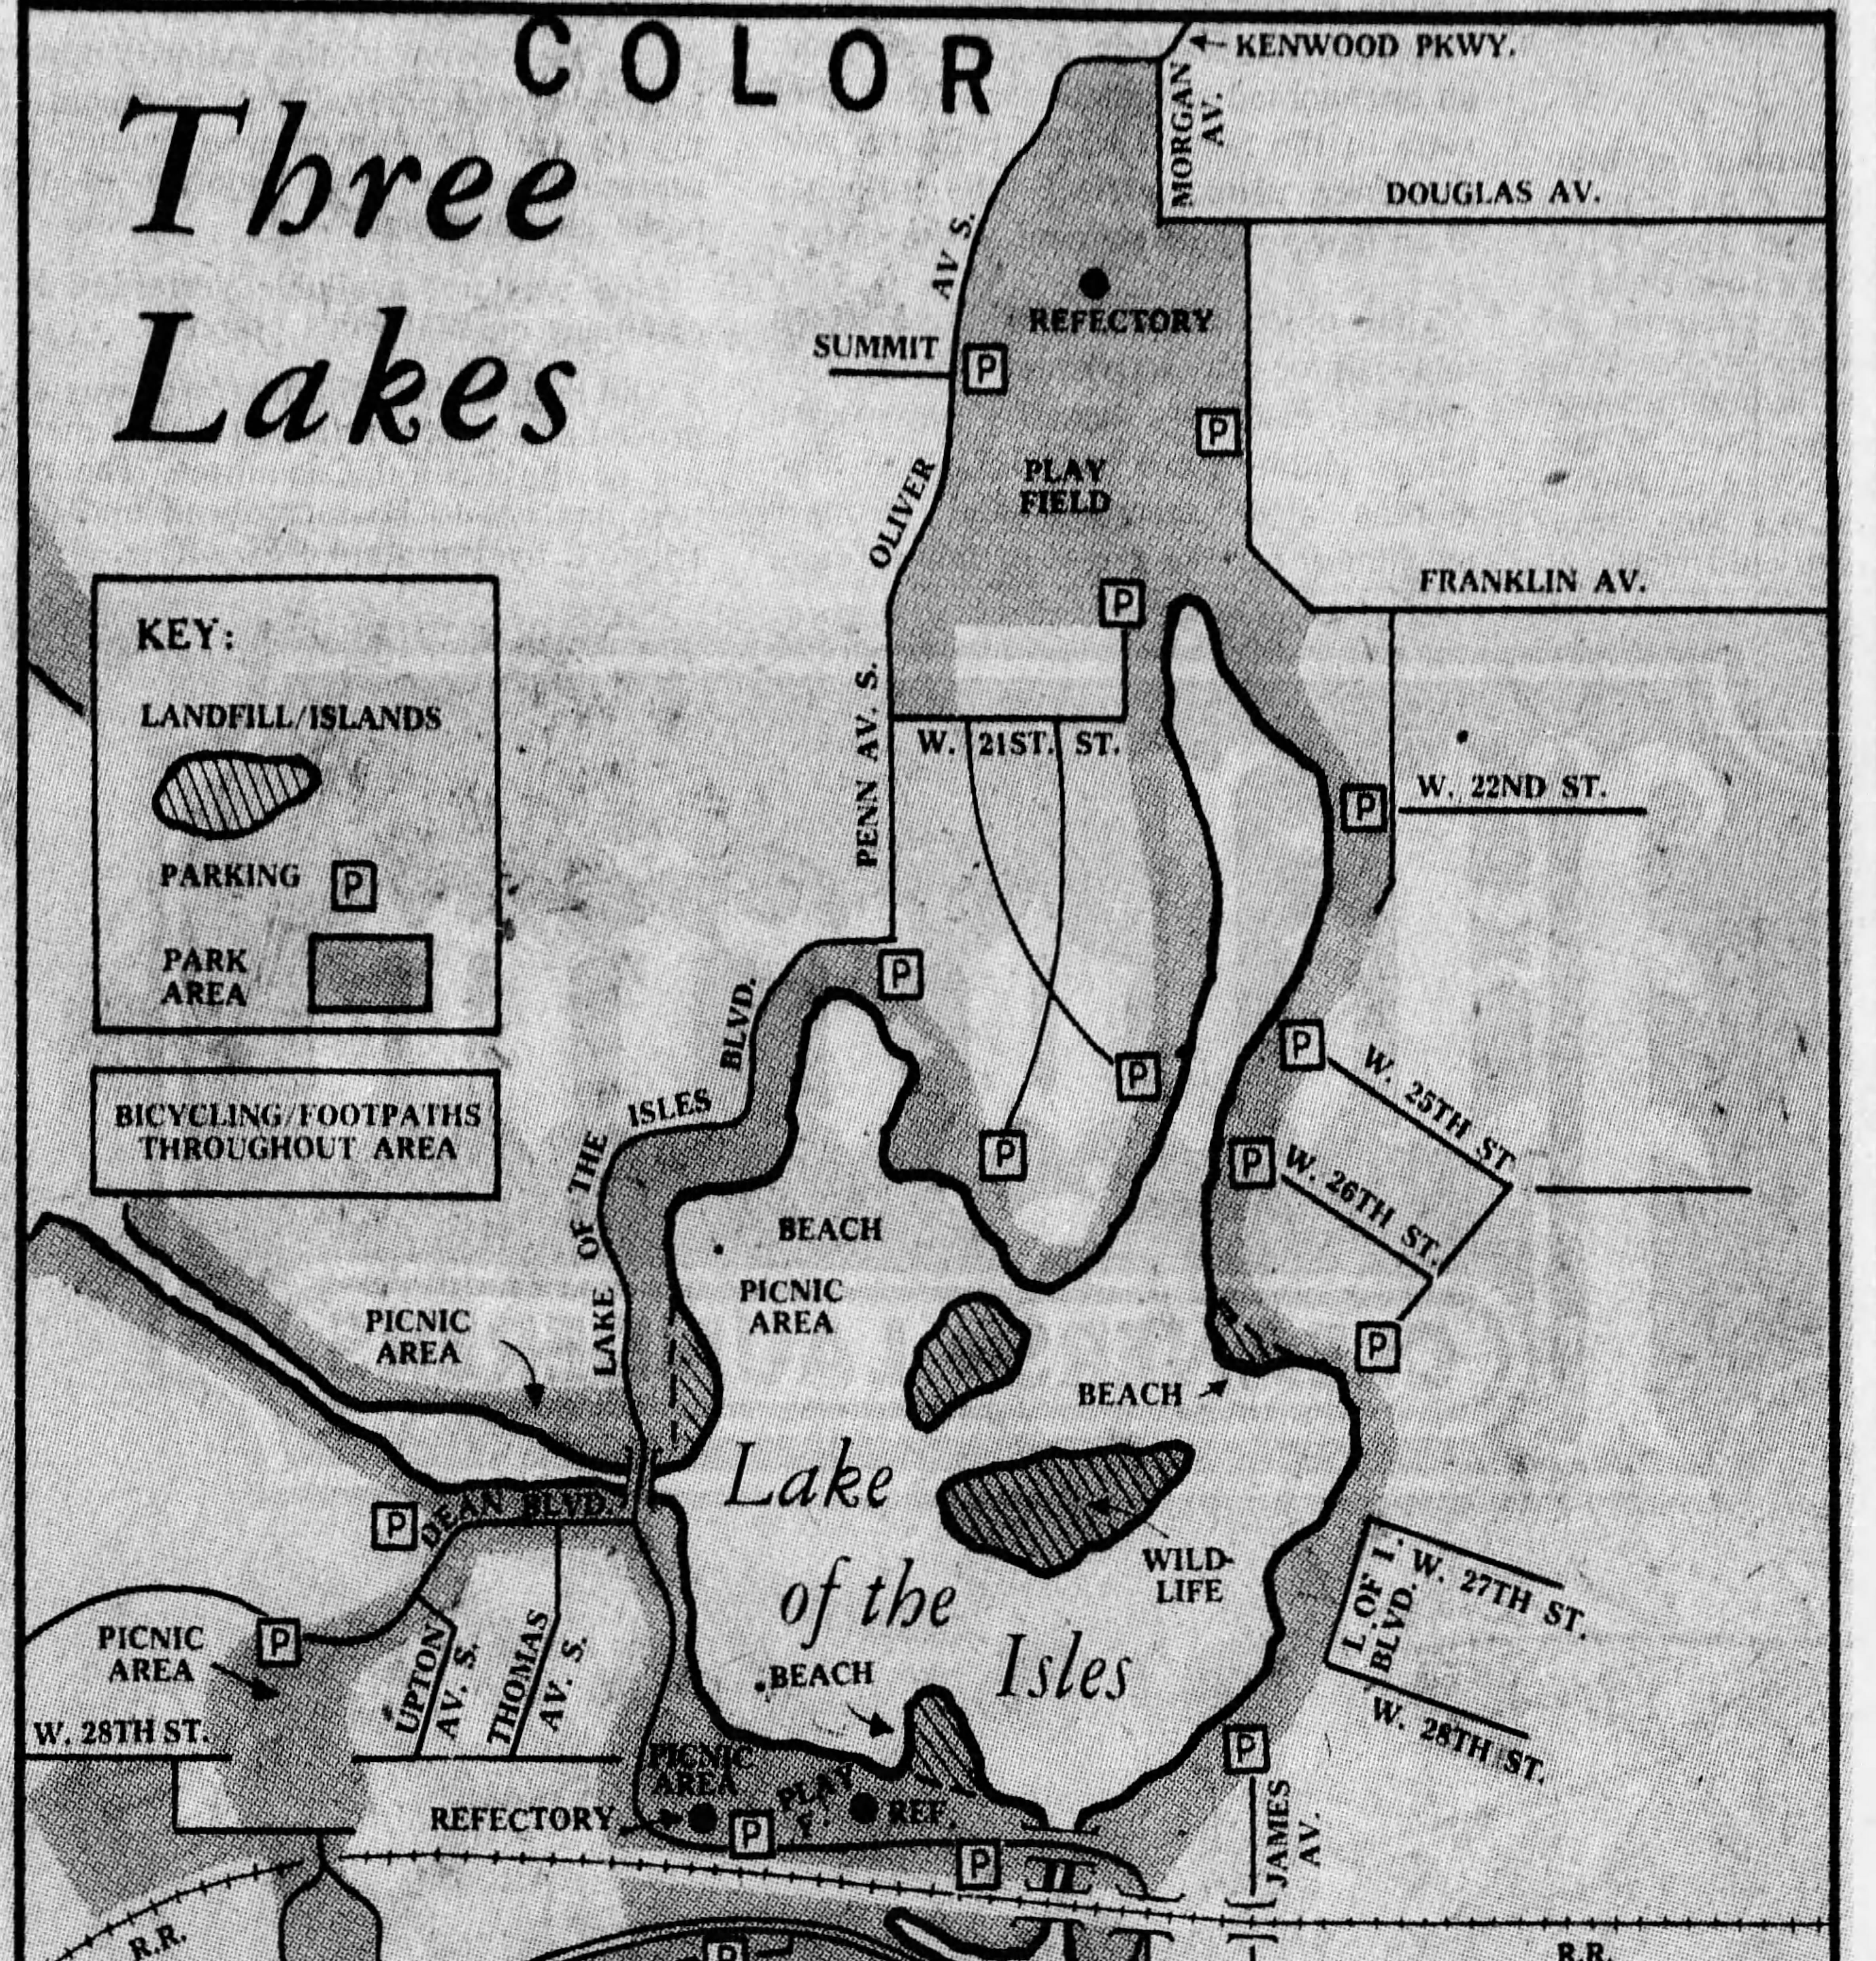 1970-09-07 The_Minneapolis_Star Lake of the Isles revisions